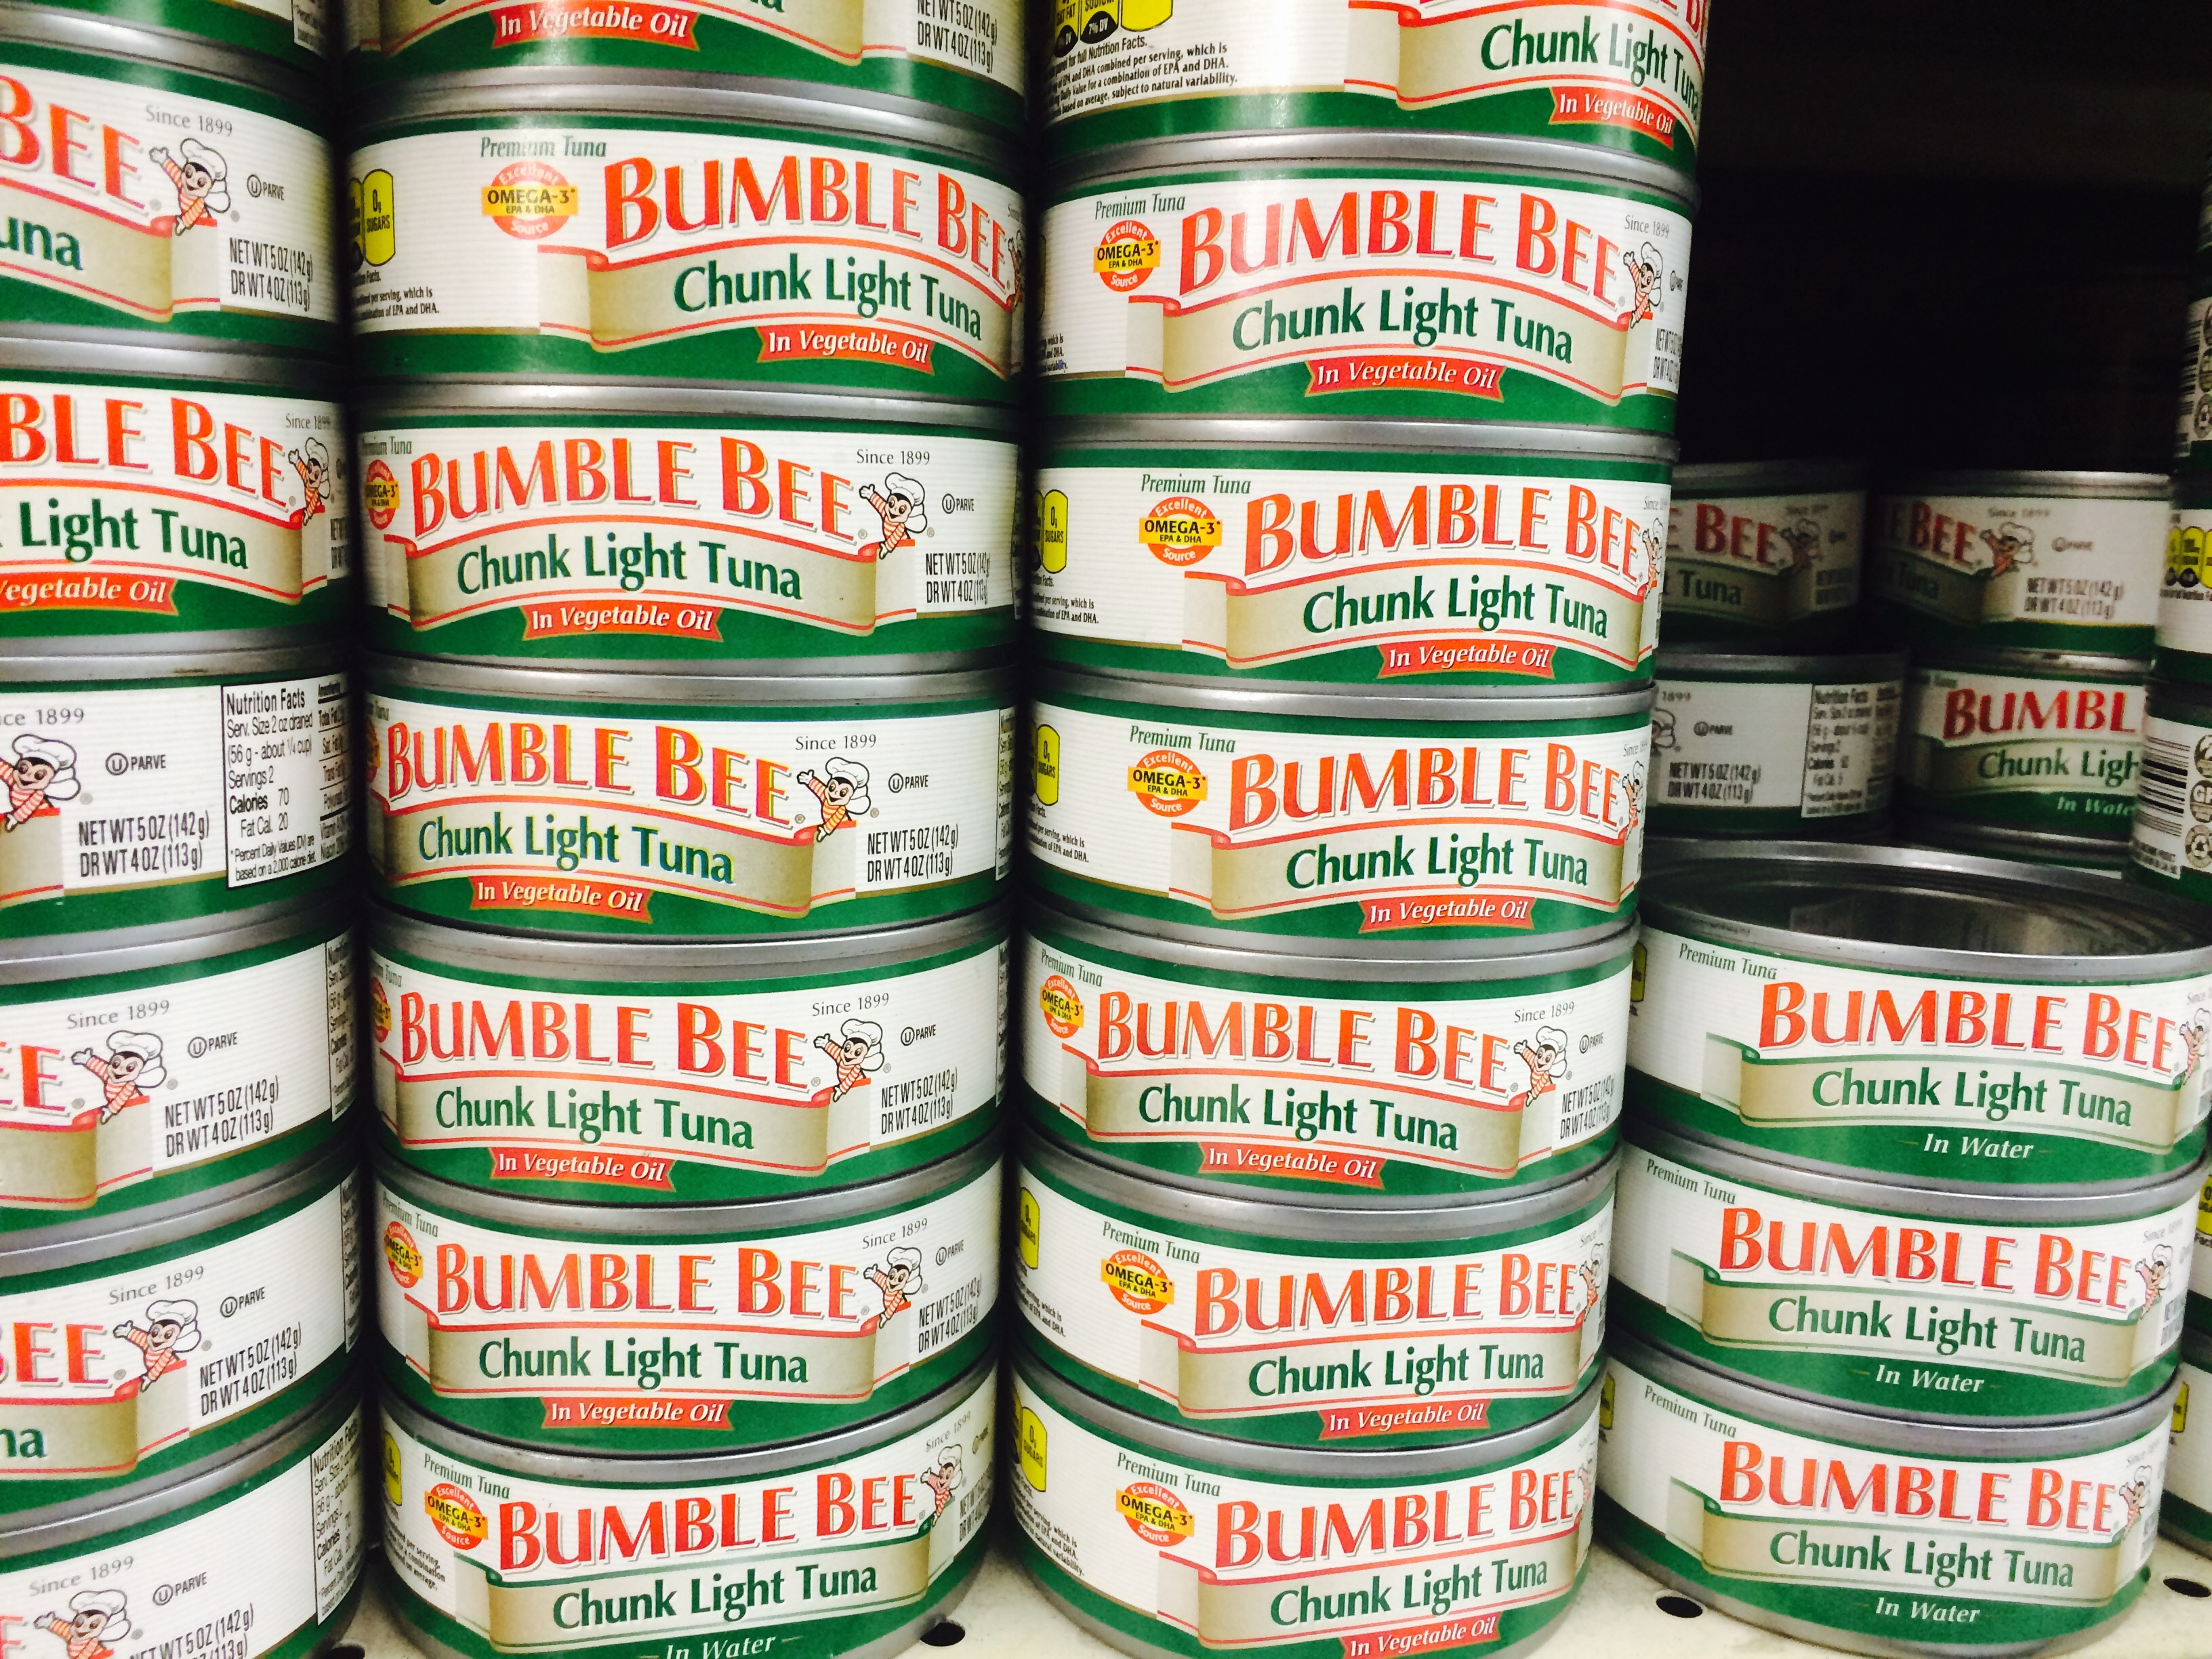 Bumble Bee chunk light tuna can is seen on a shelf at a grocery store.